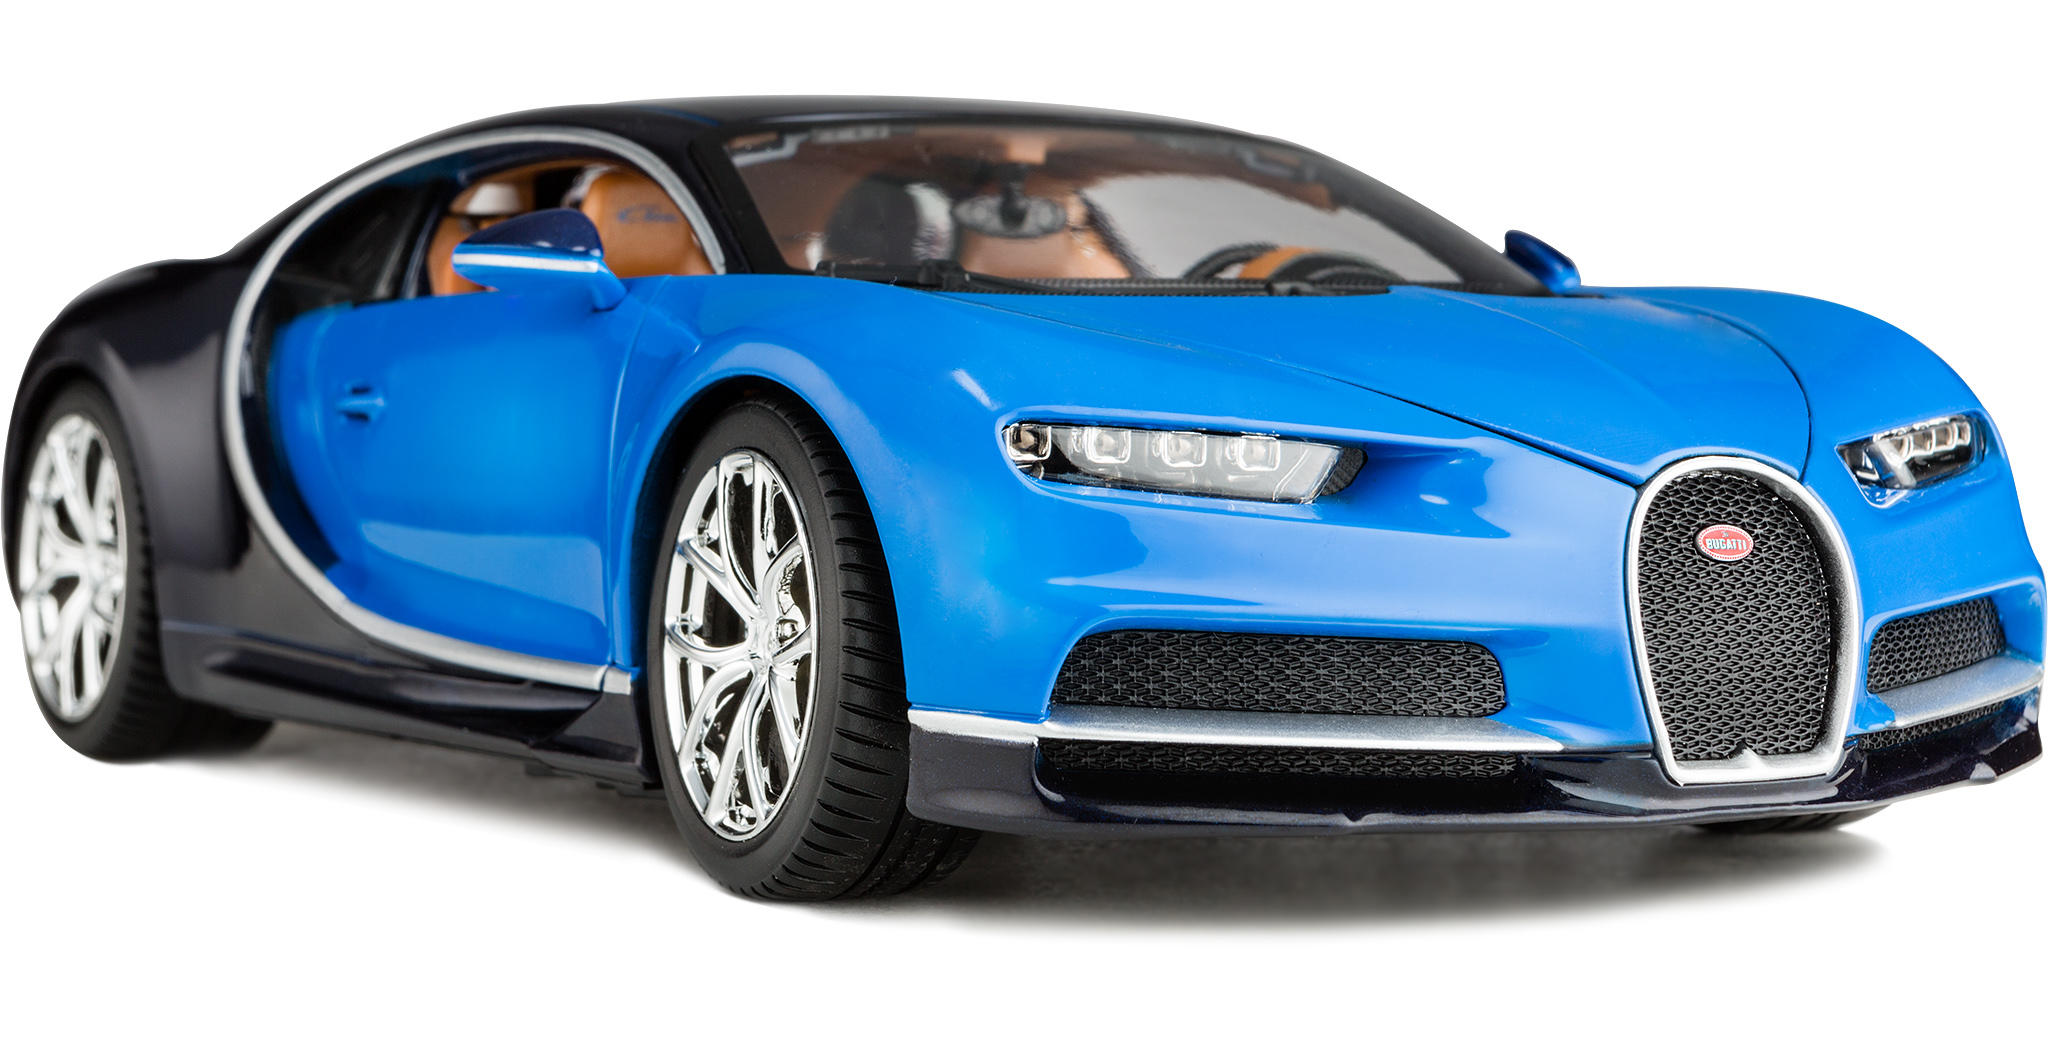 miniatura bburago 1 18 bugatti chiron 2016 preto e azul r 299 00 em mercado livre. Black Bedroom Furniture Sets. Home Design Ideas